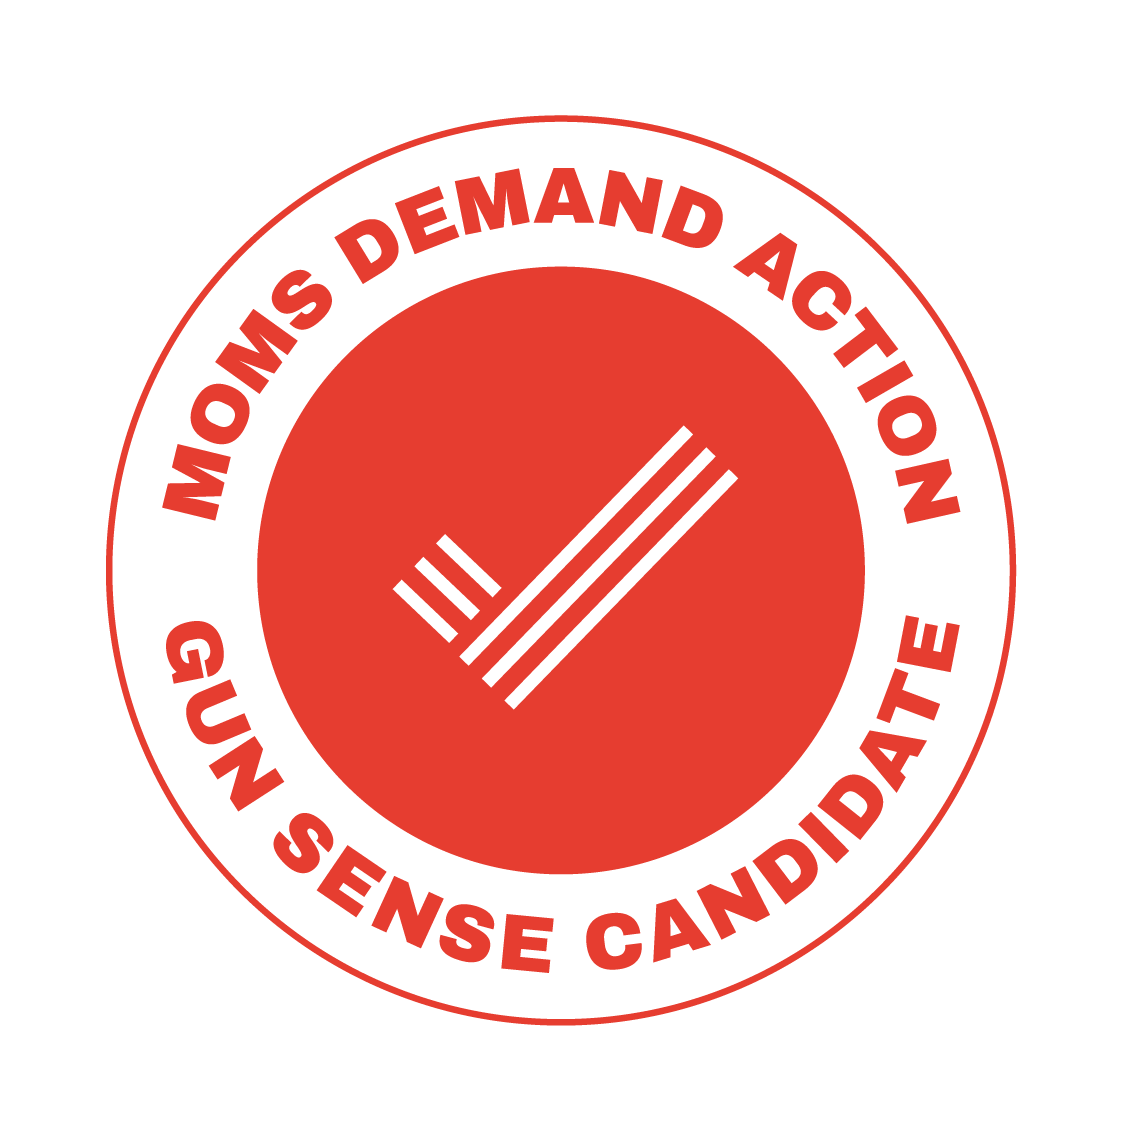 Mom's Demand Action - It is an honor to be selected by Mom's Demand Action as a Gun Sense Candidate. I respect the rights for people to protect themselves and family, participate in sport and enjoy hunting. I also believe we need to work to establish reasonable protections to prevent people who shouldn't have weapons from doing so. It is our obligation to have a discussion about responsible gun ownership and take action to prevent future tragedies.Learn more: https://momsdemandaction.org/